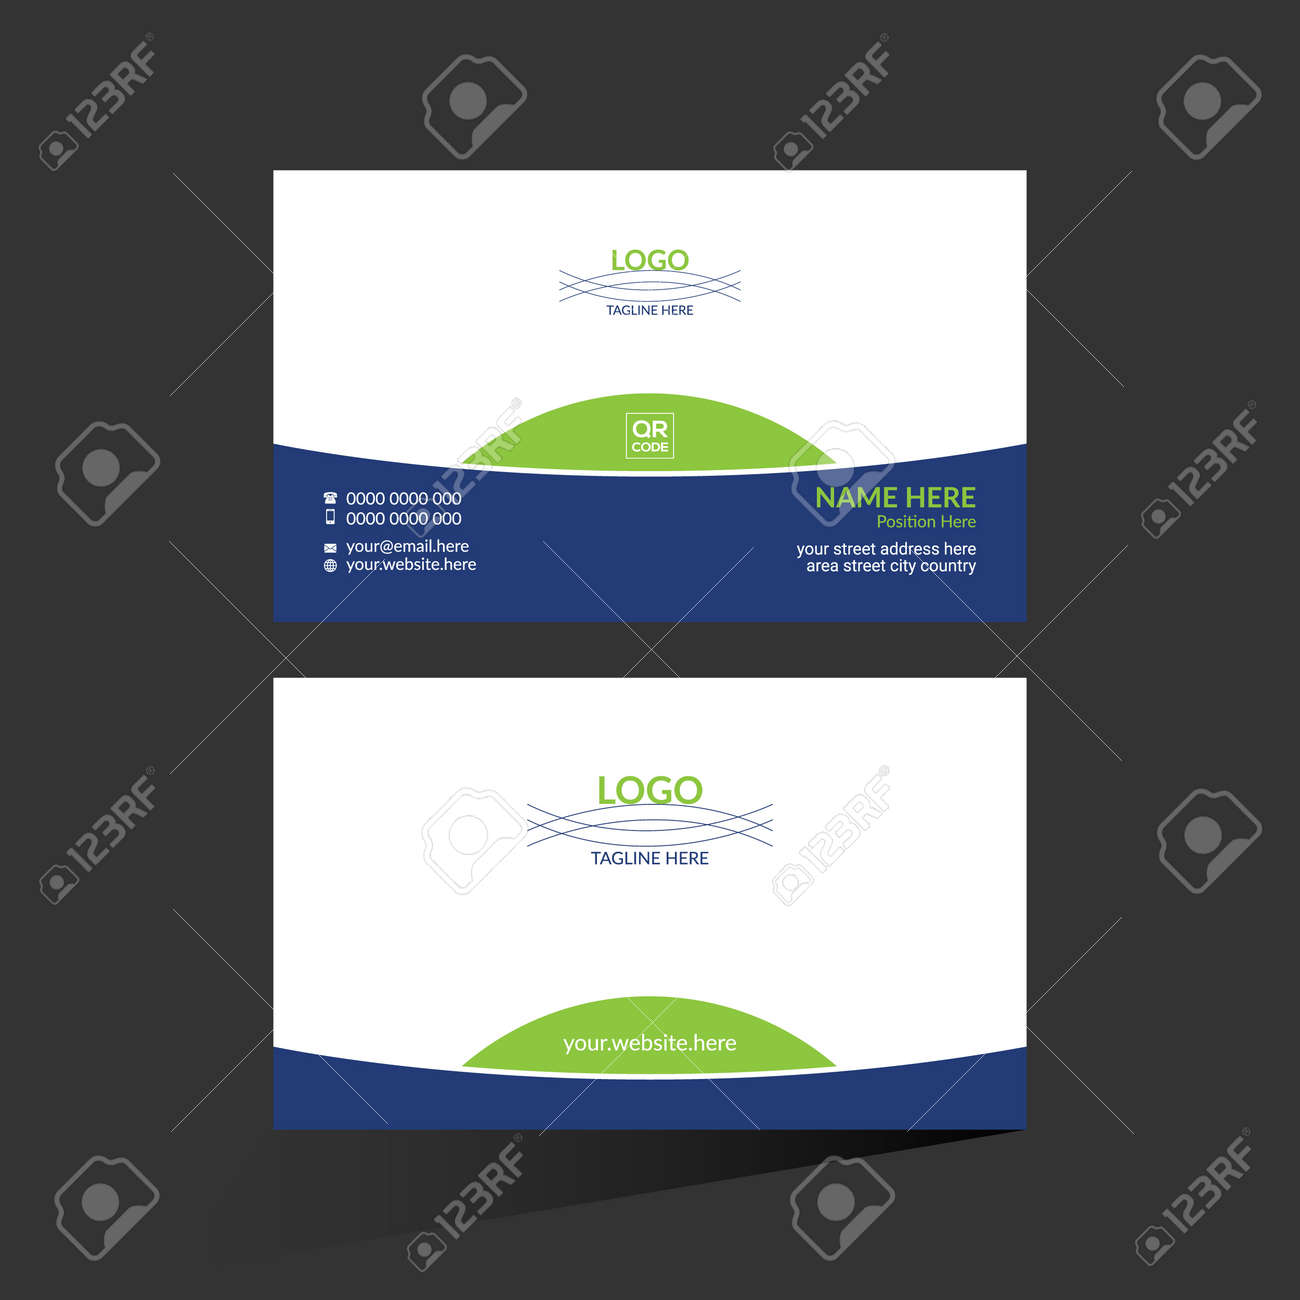 blue and green colored vector business card design for any company use - 172189360